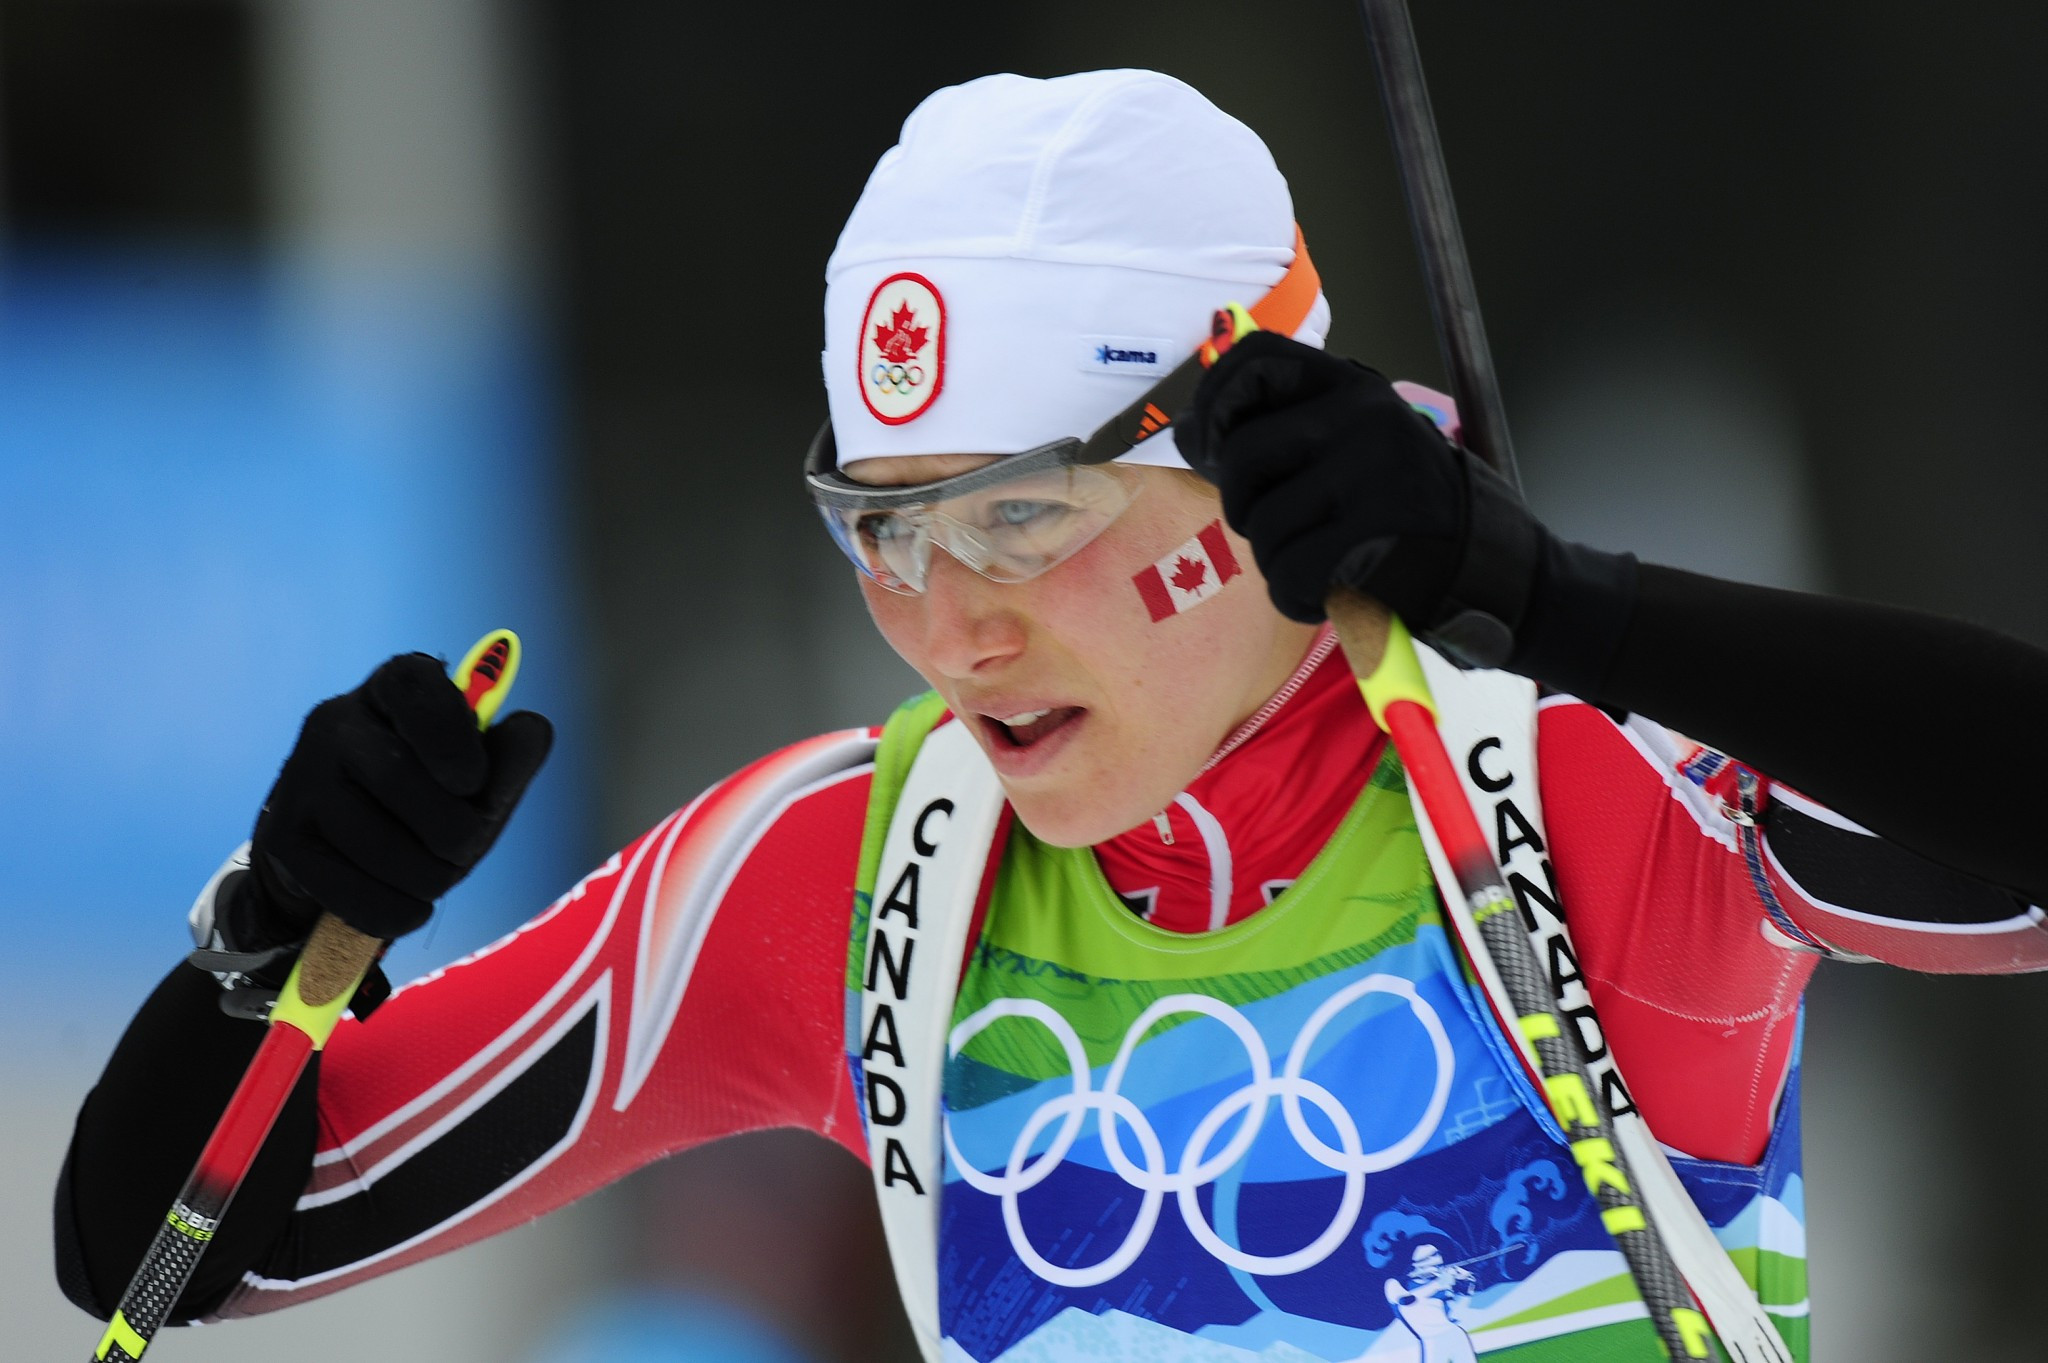 Three-time Winter Olympian Zina Kocher was one athlete coached by Richard Boruta ©Getty Images